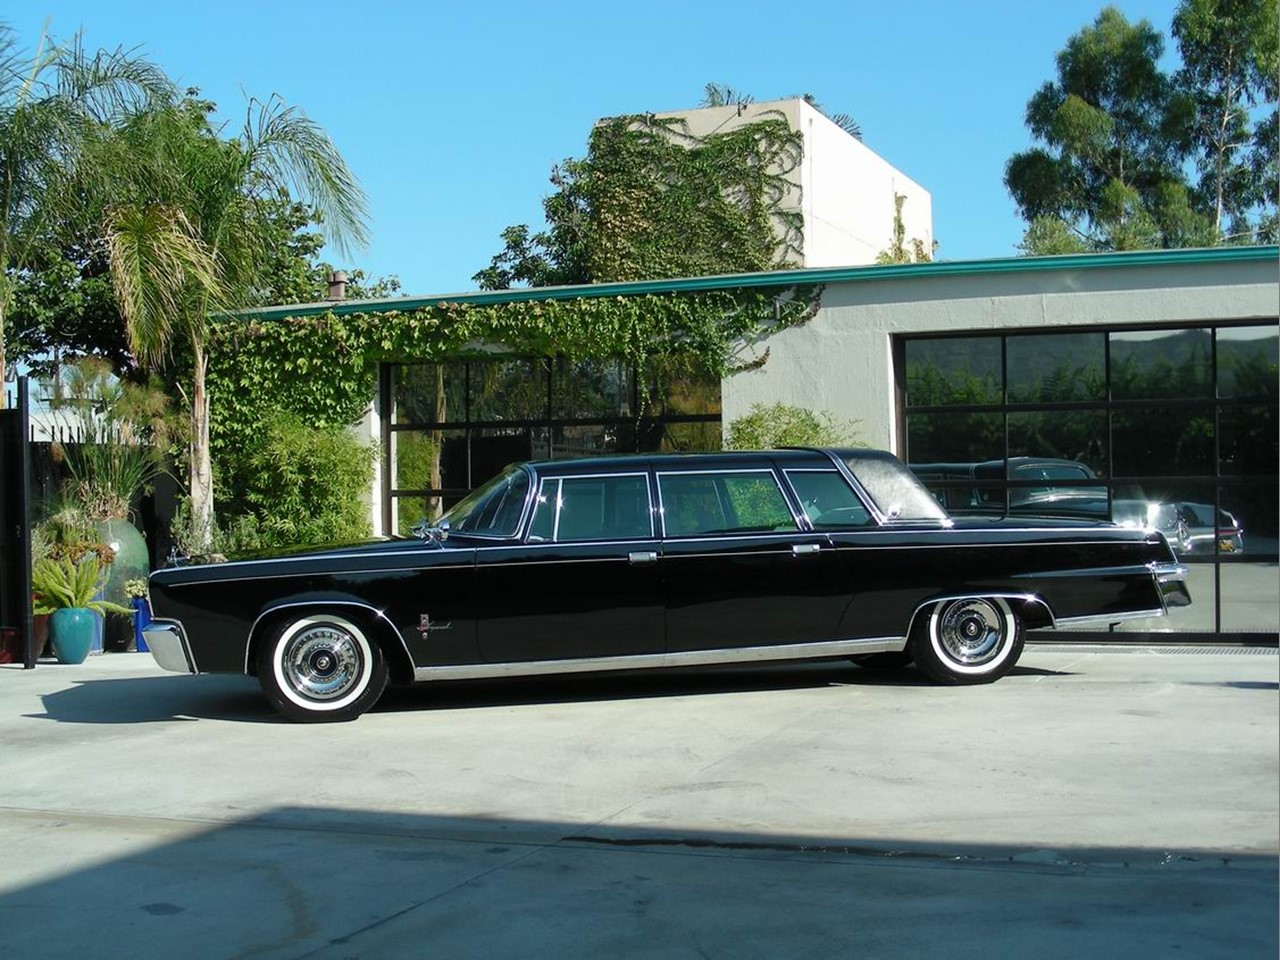 Limousine: Crown Jewel: 1964 Ghia Landau Crown Imperial Limousine